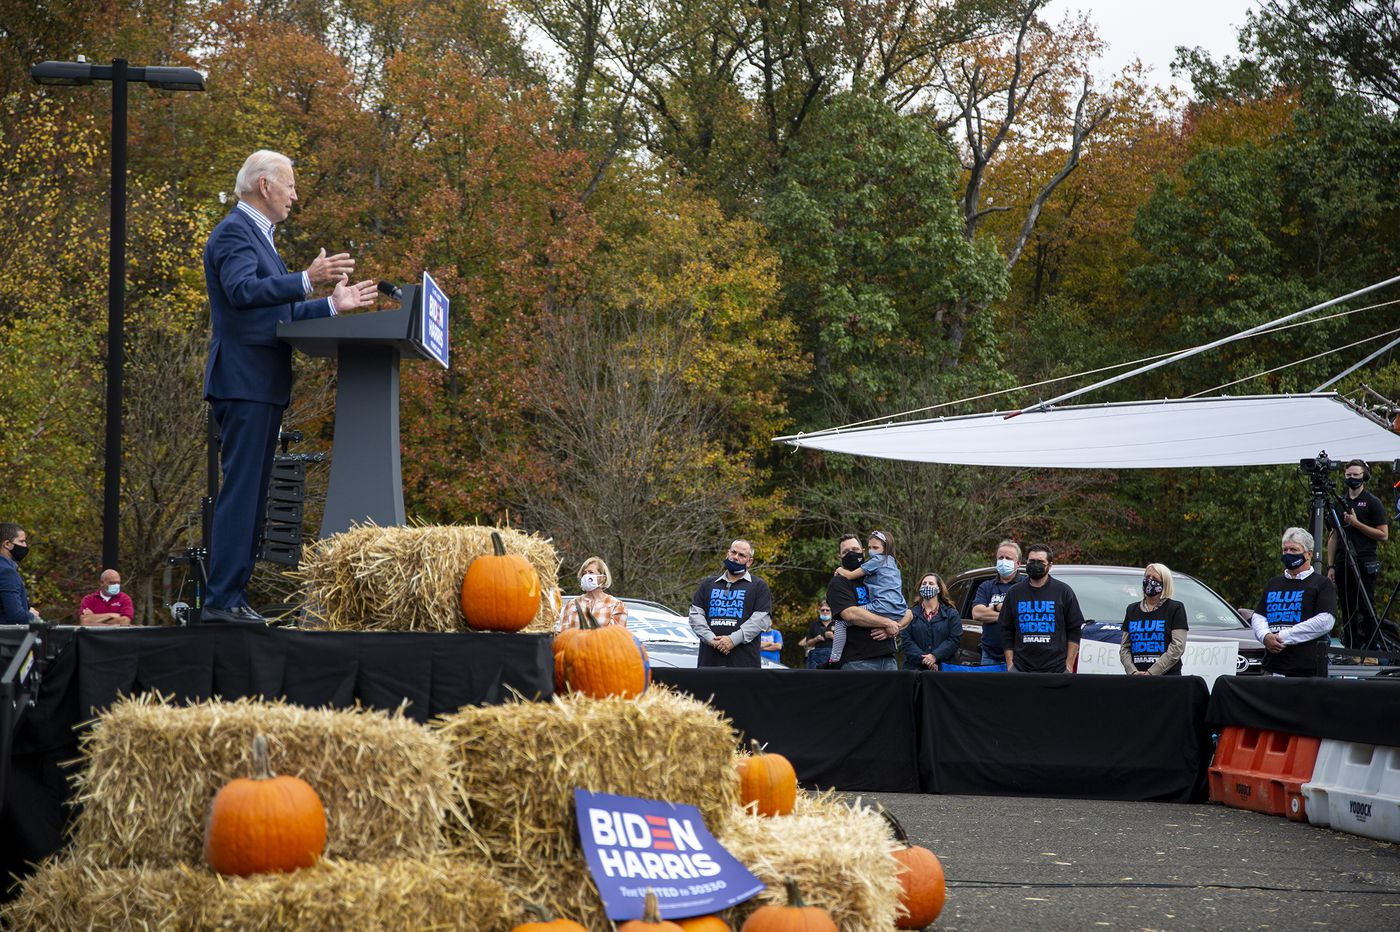 New polls show Biden in a strong position in Pennsylvania as 2020 campaign nears its end